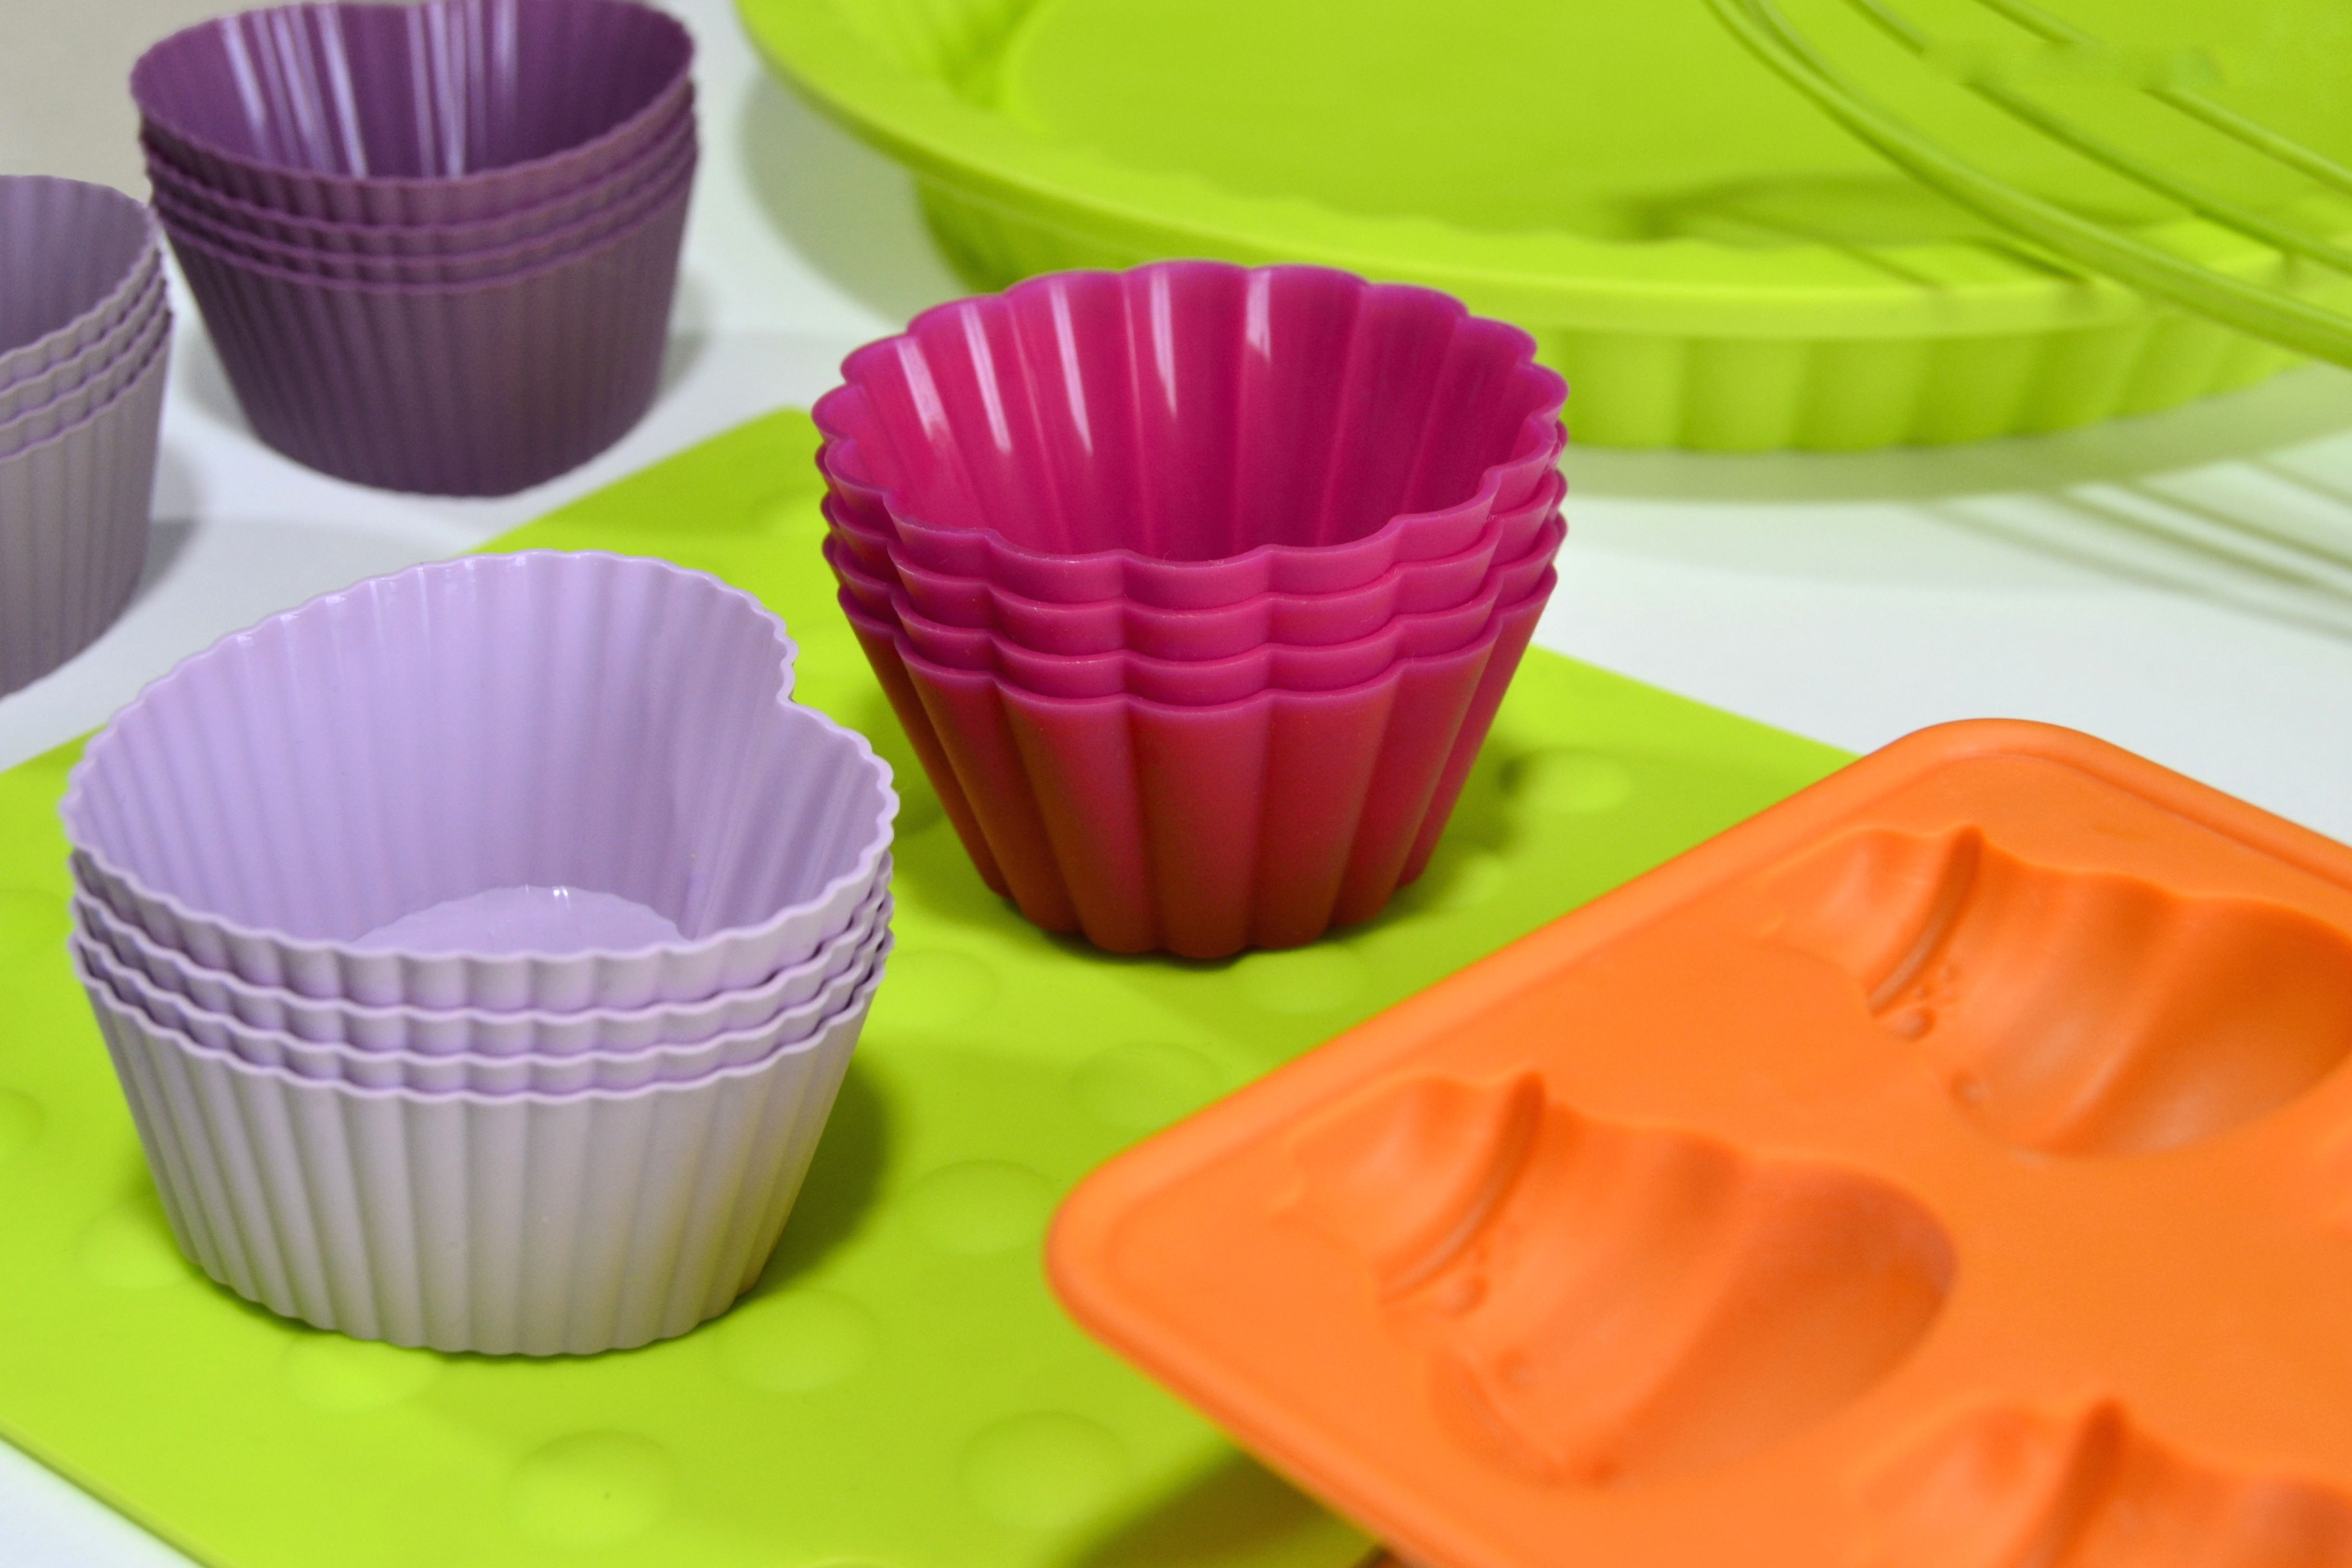 Is Your Silicone Bakeware Sticky?